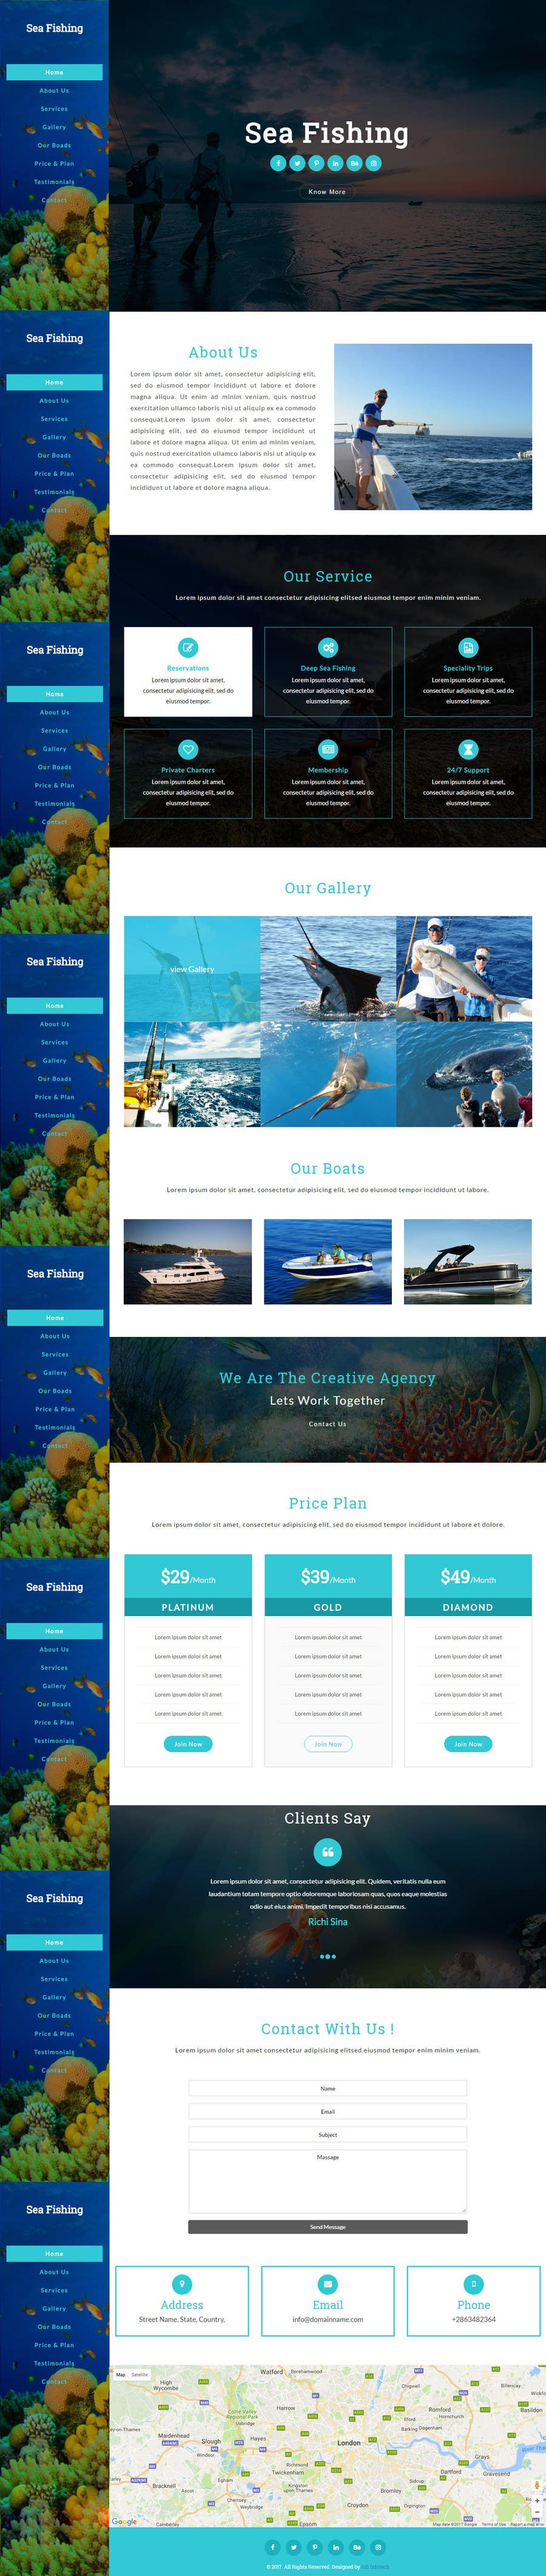 Contest Entry #17 for Design a Website Template with a Fishing Theme